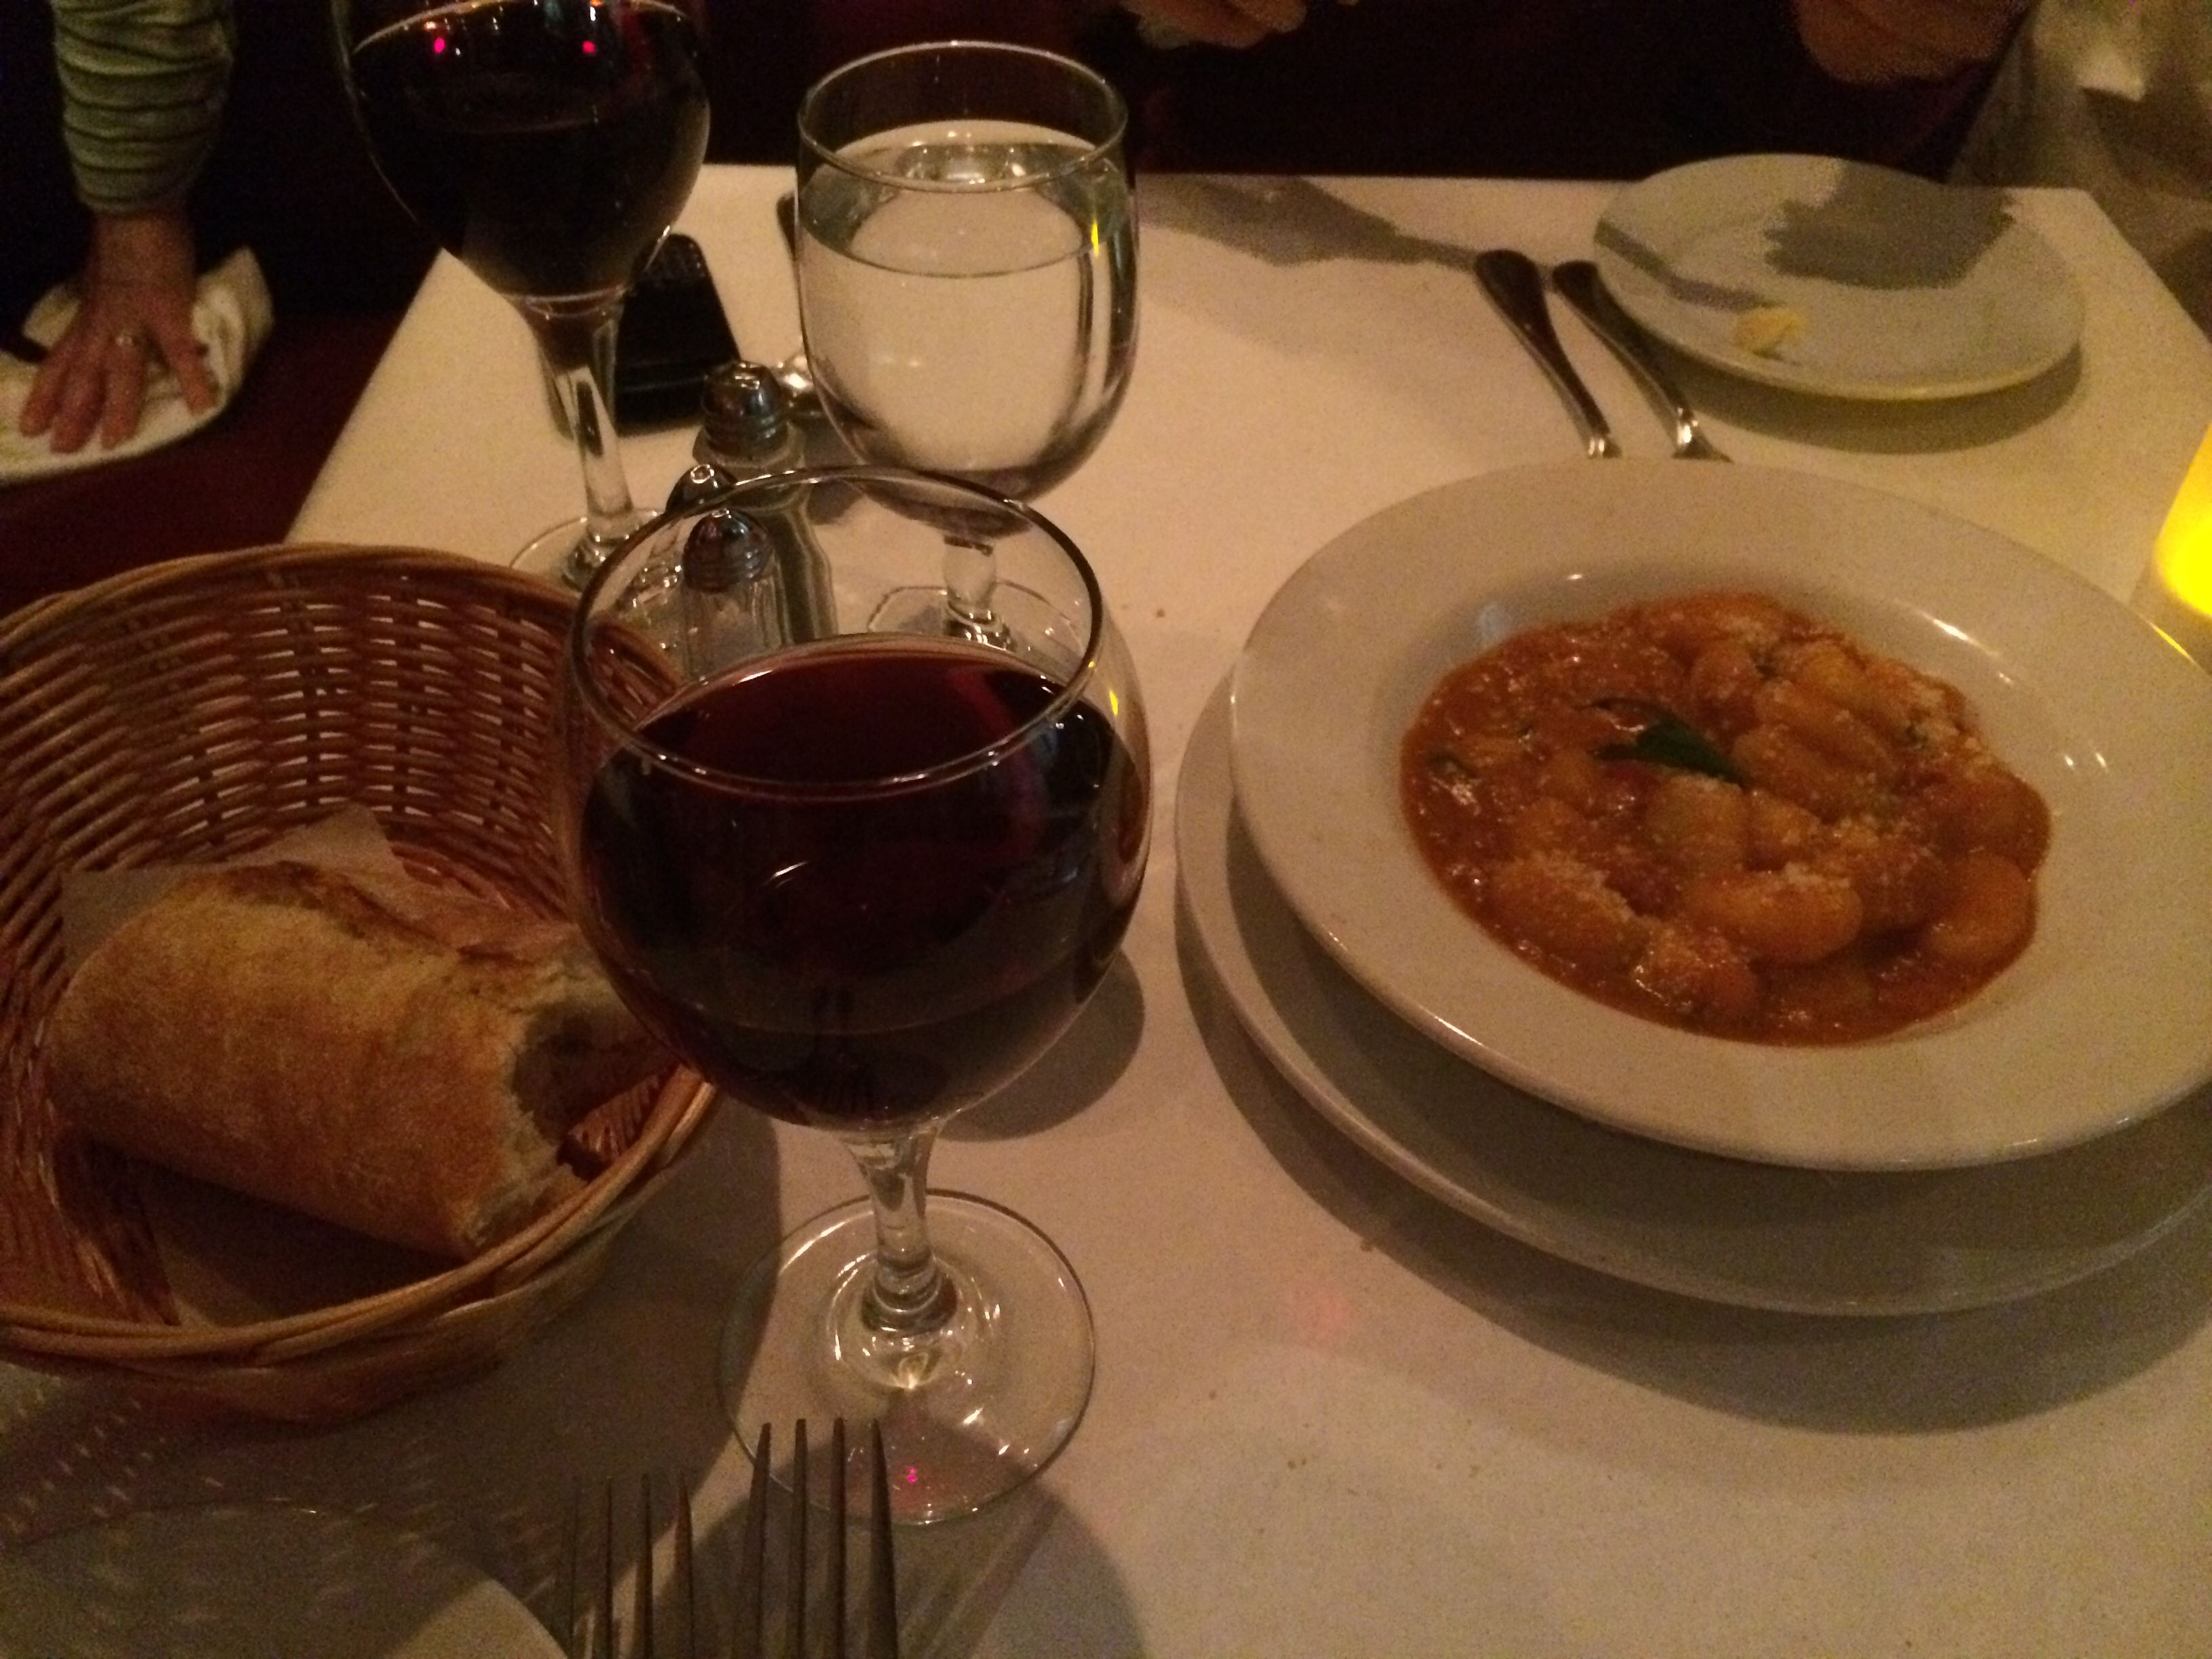 Gnocchi in tomato basil pinot noir and french bread